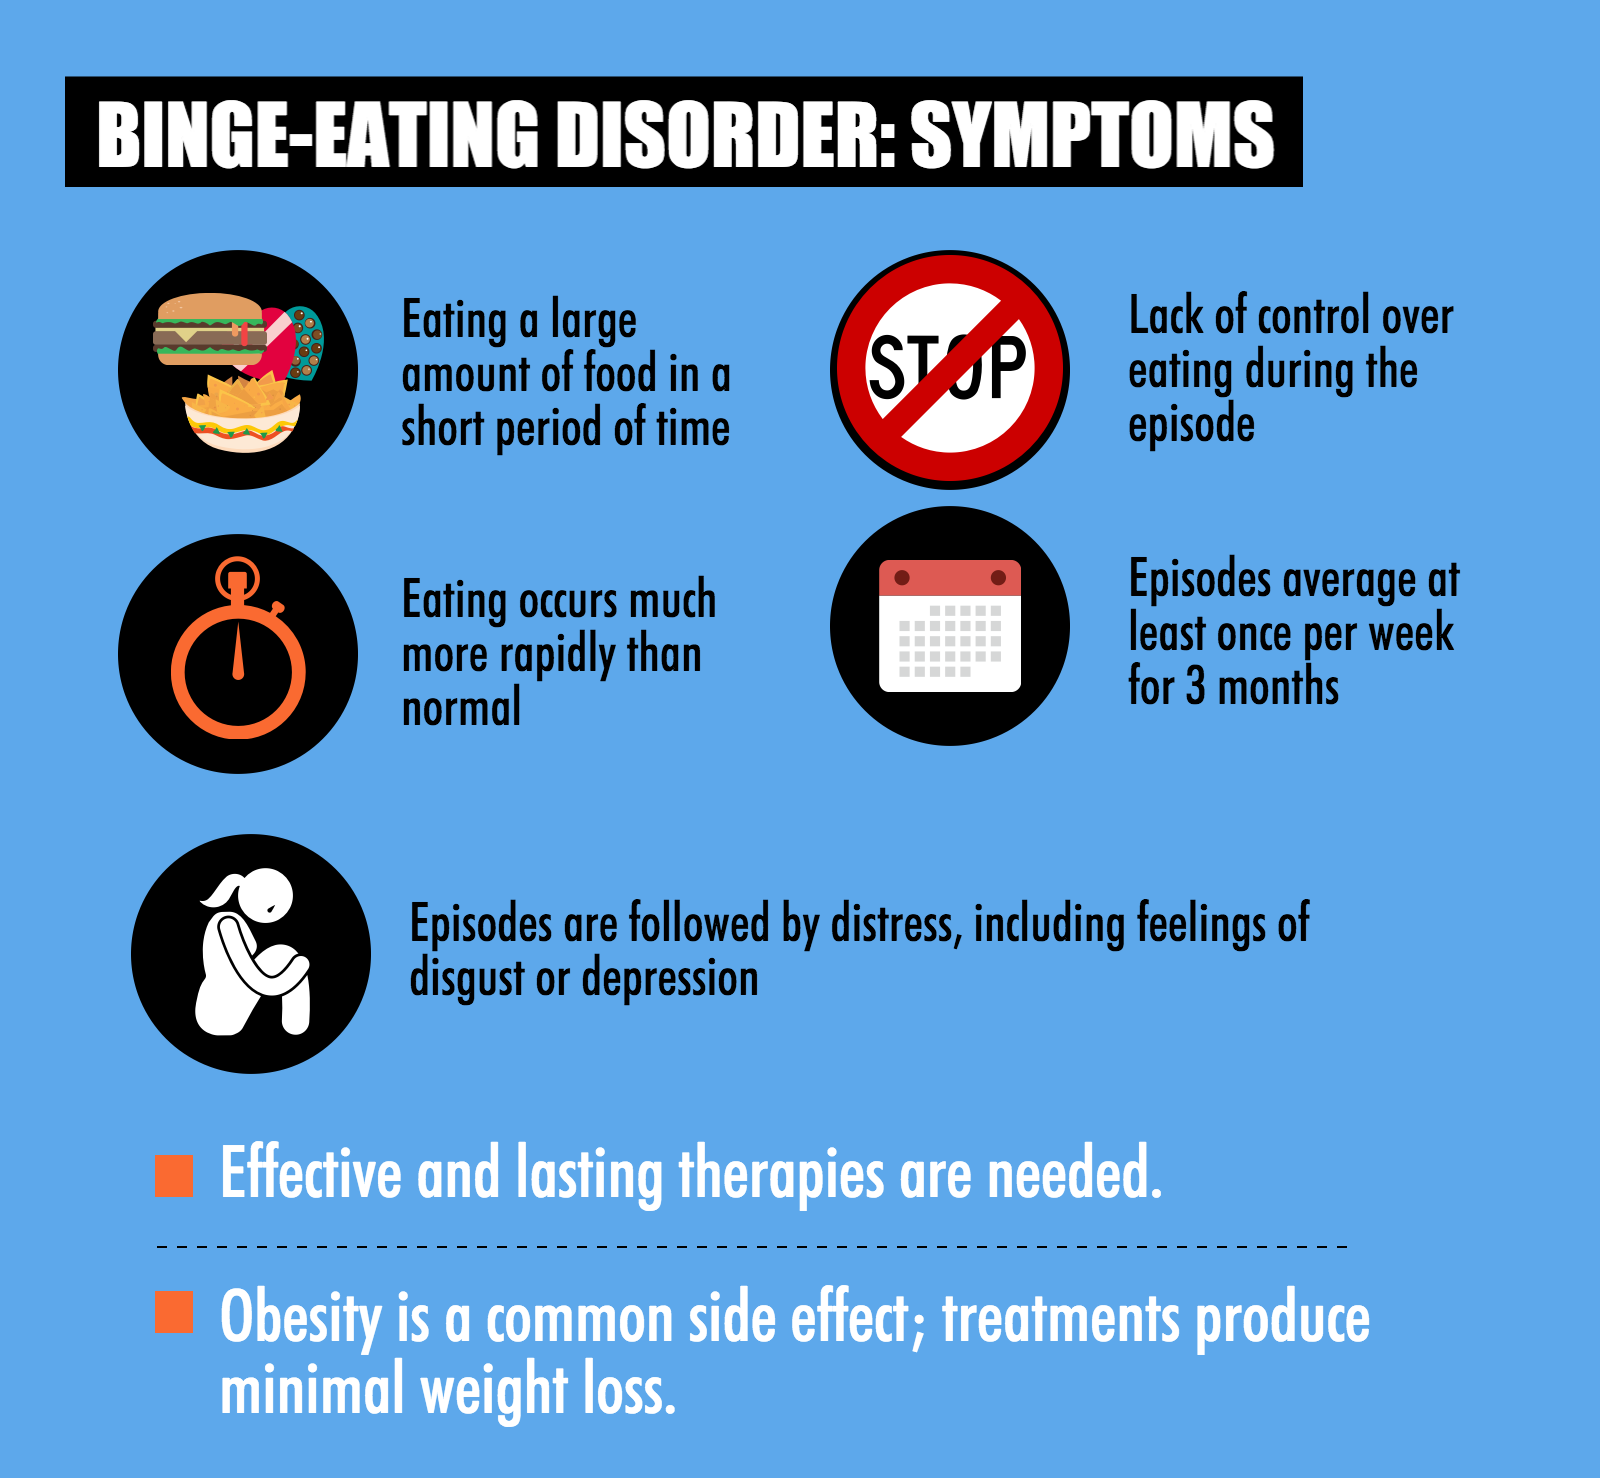 an analysis of eating disorders Eating disorders: a case study analysis an honors thesis (honrs 499) by jamie irwin thesis advisor tammy hatfield ball state university muncie, indiana.